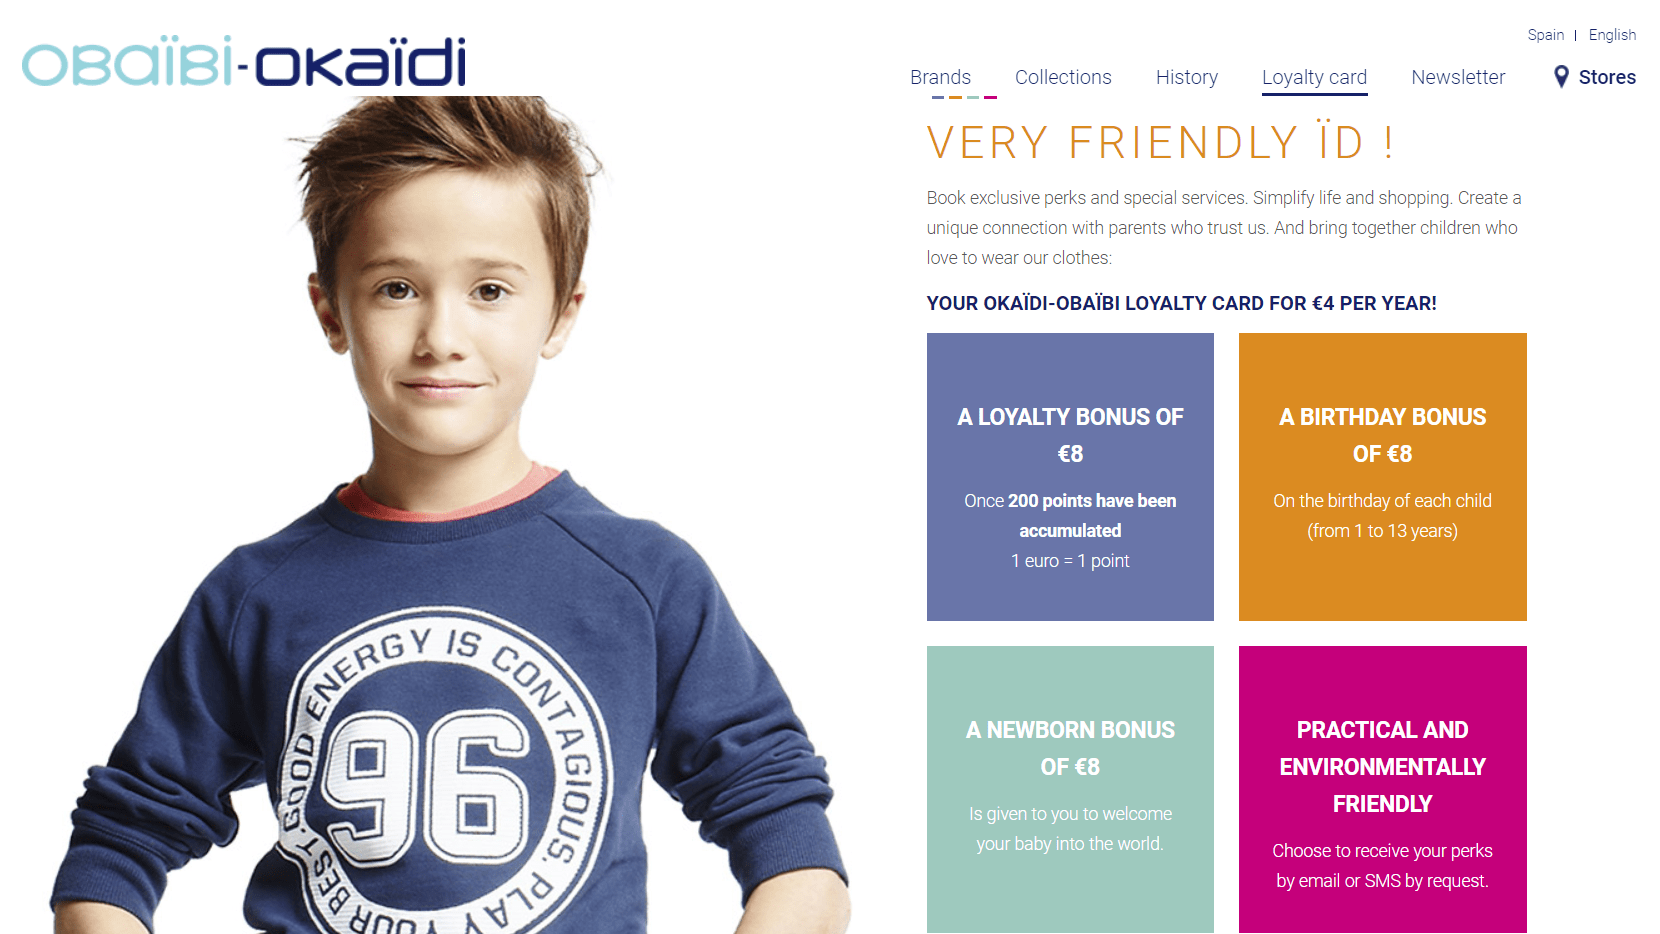 Child fashion company Okaidi offers a subscription option for customers. By paying a €4 annual fee, members unlock loyalty benefits like birthday rewards, discounts, and vouchers when parents have a new baby on board.